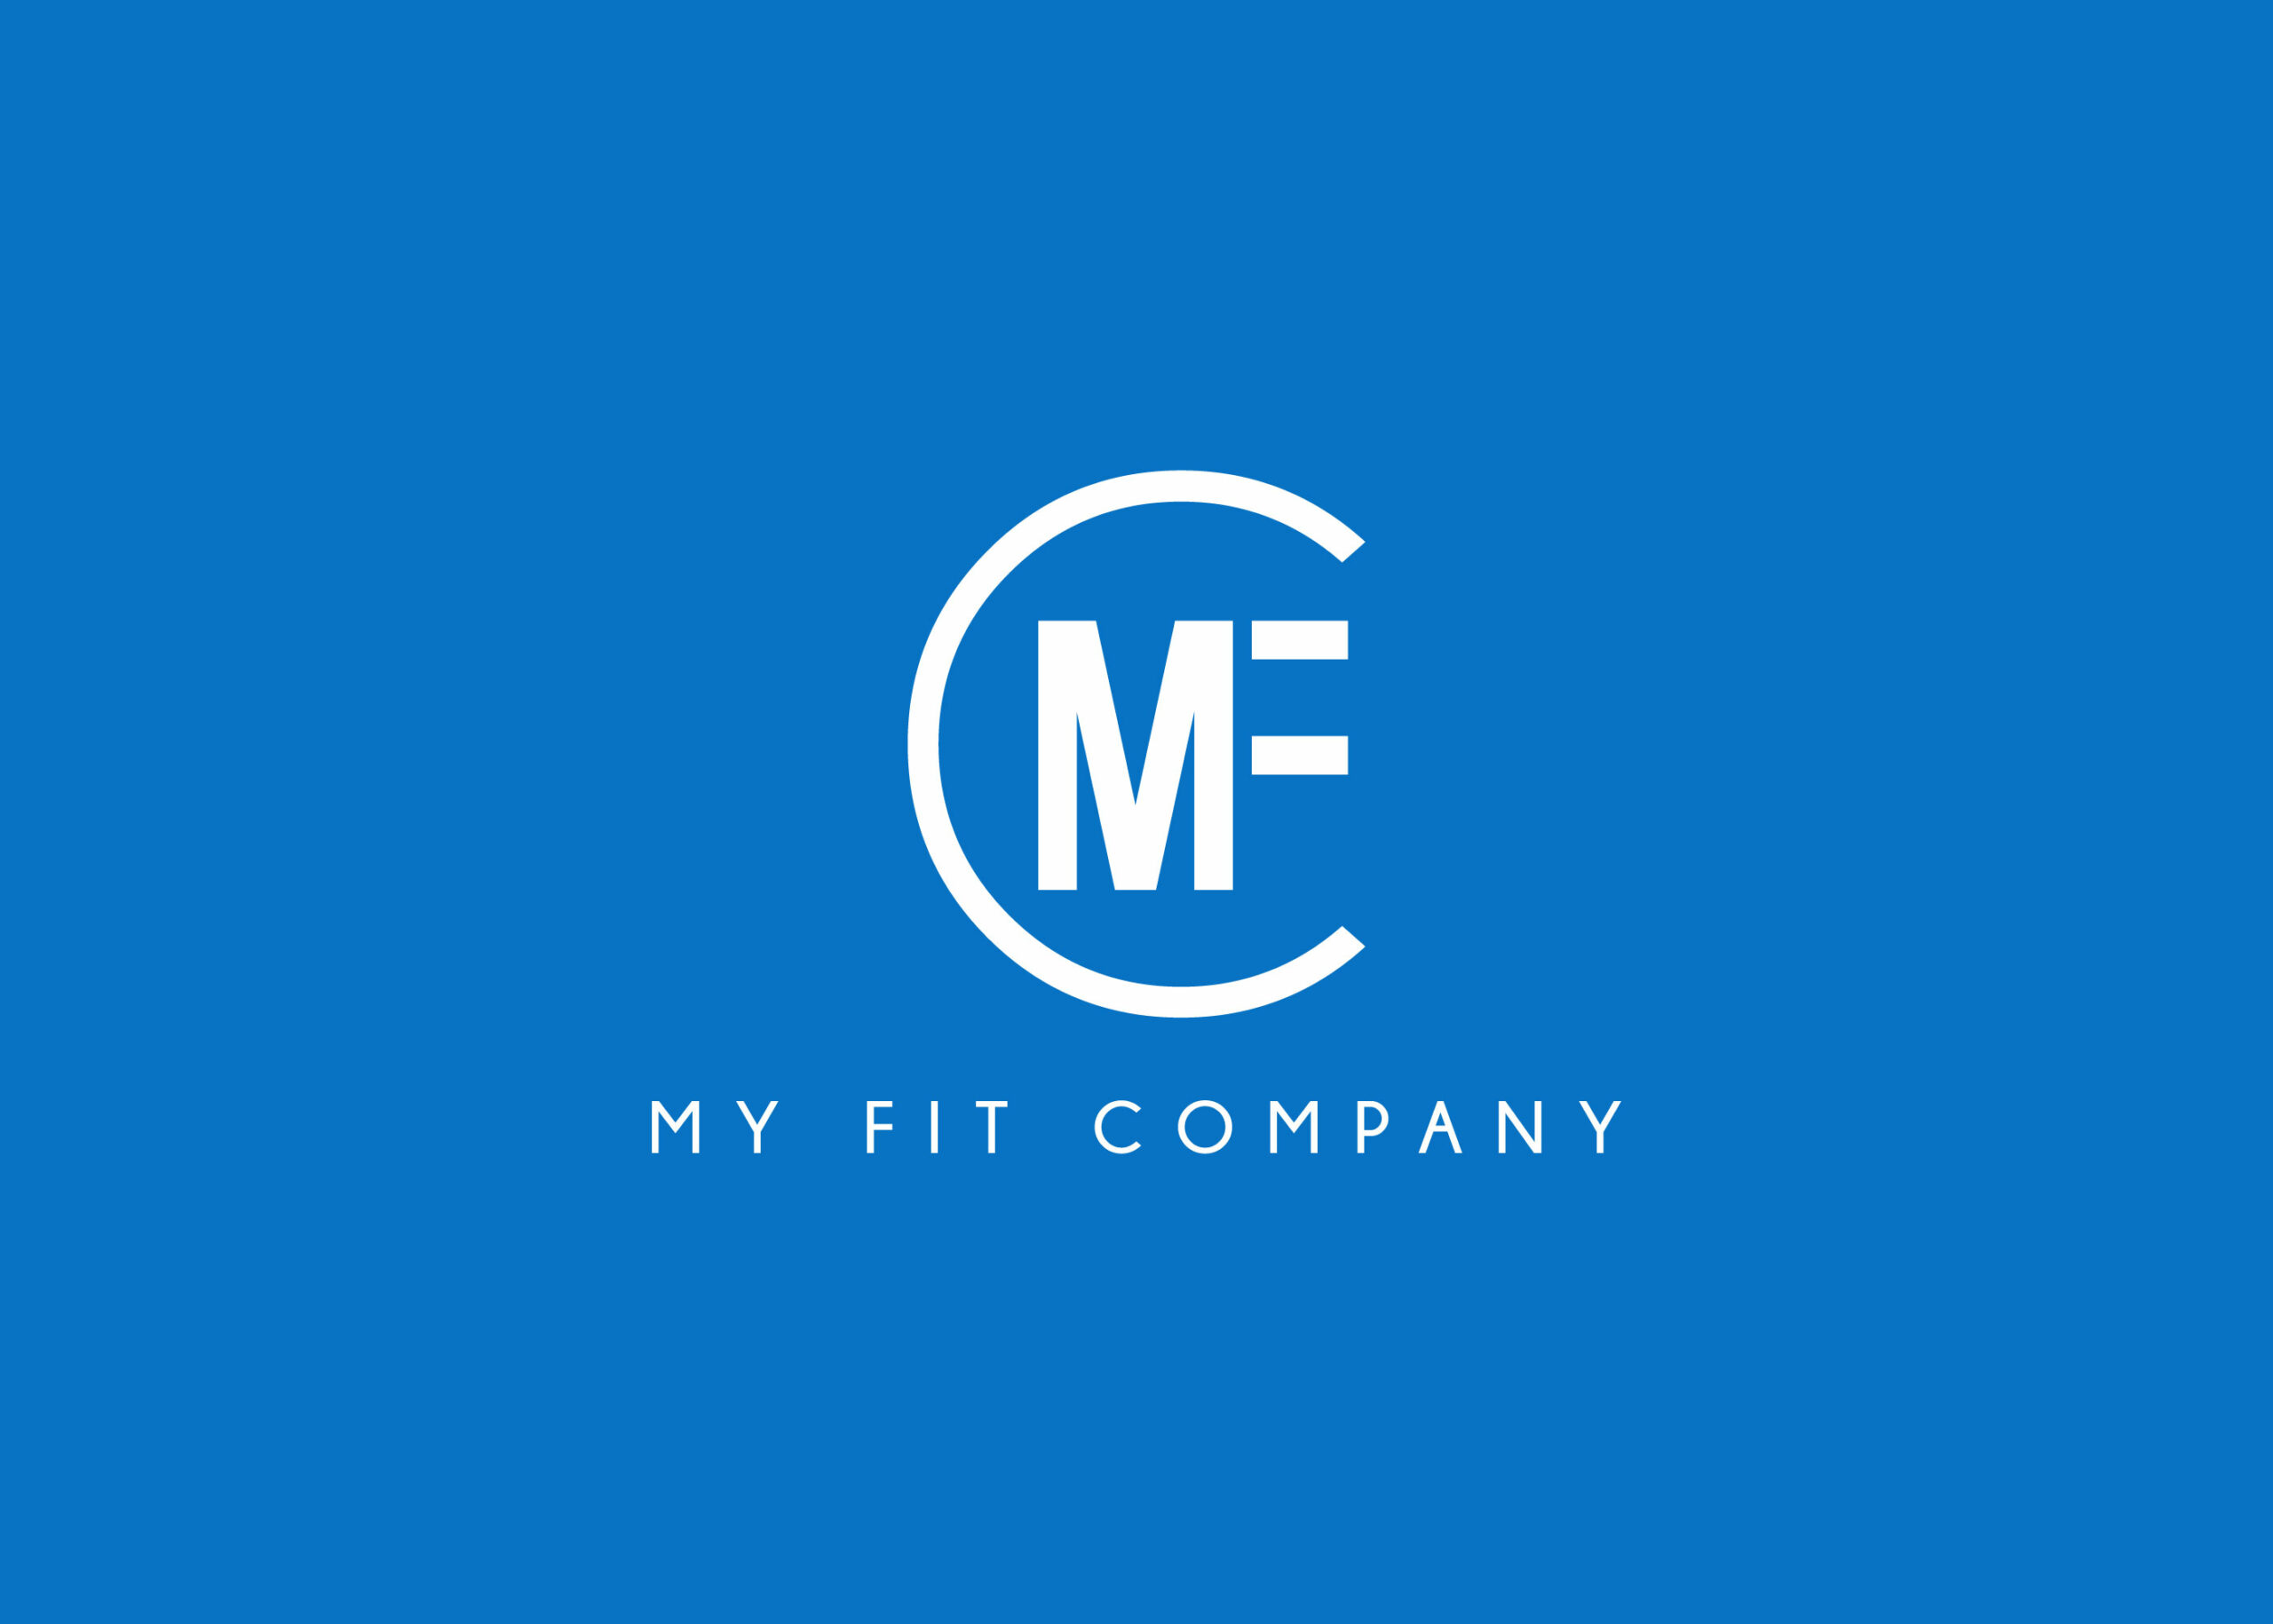 My Fit Company